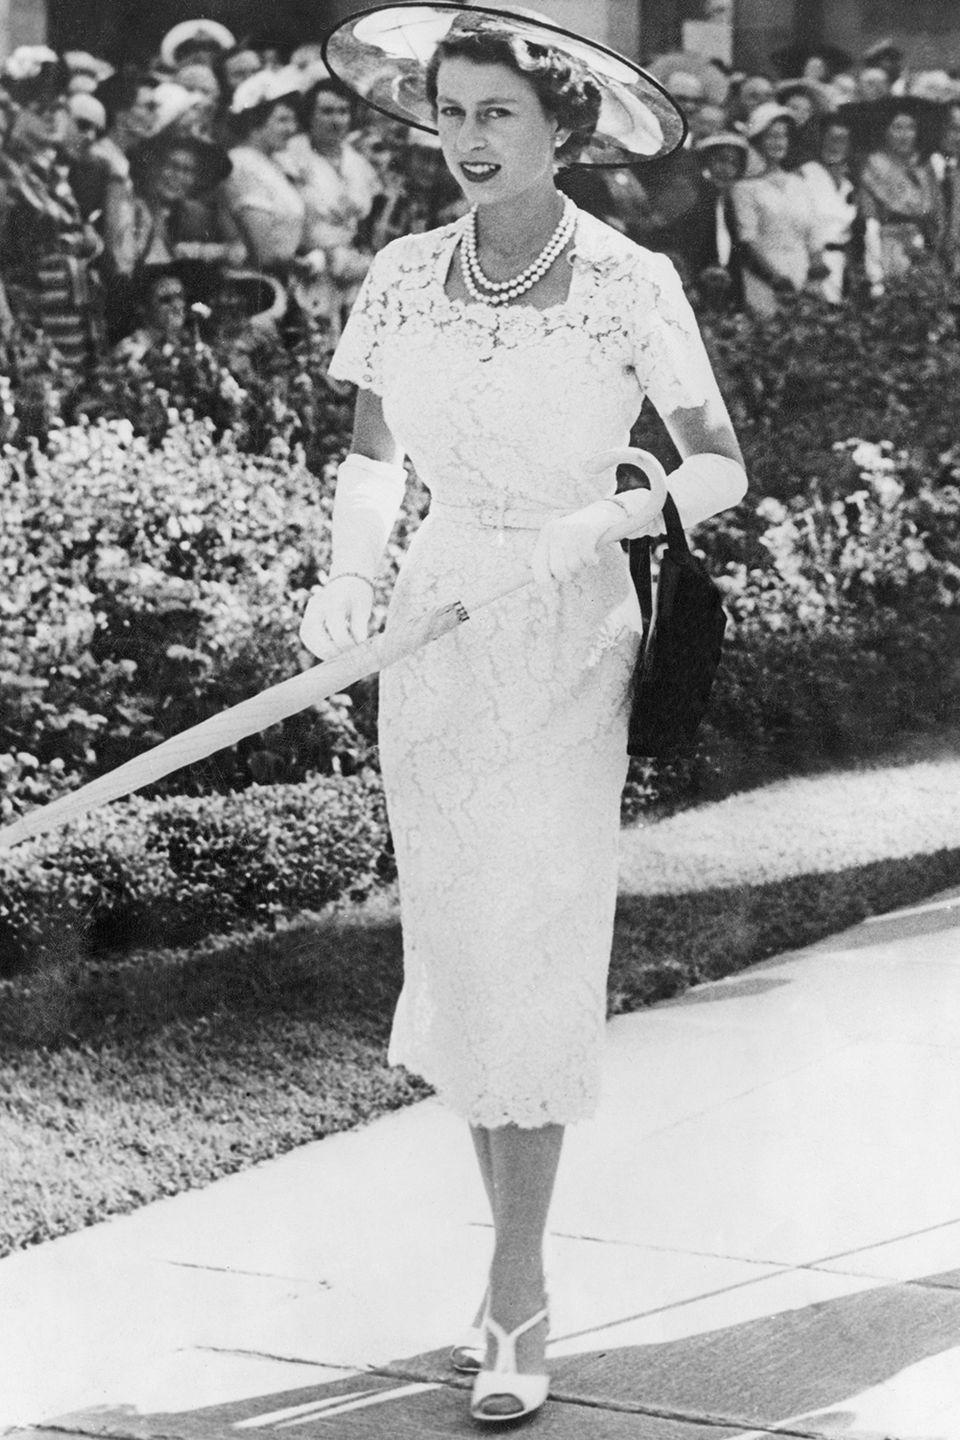 <p>The new monarch attends a garden party in Sydney, Australia wearing a modest white, lace dress with gloves. Elizabeth had only been the Queen for two years in 1954.</p>